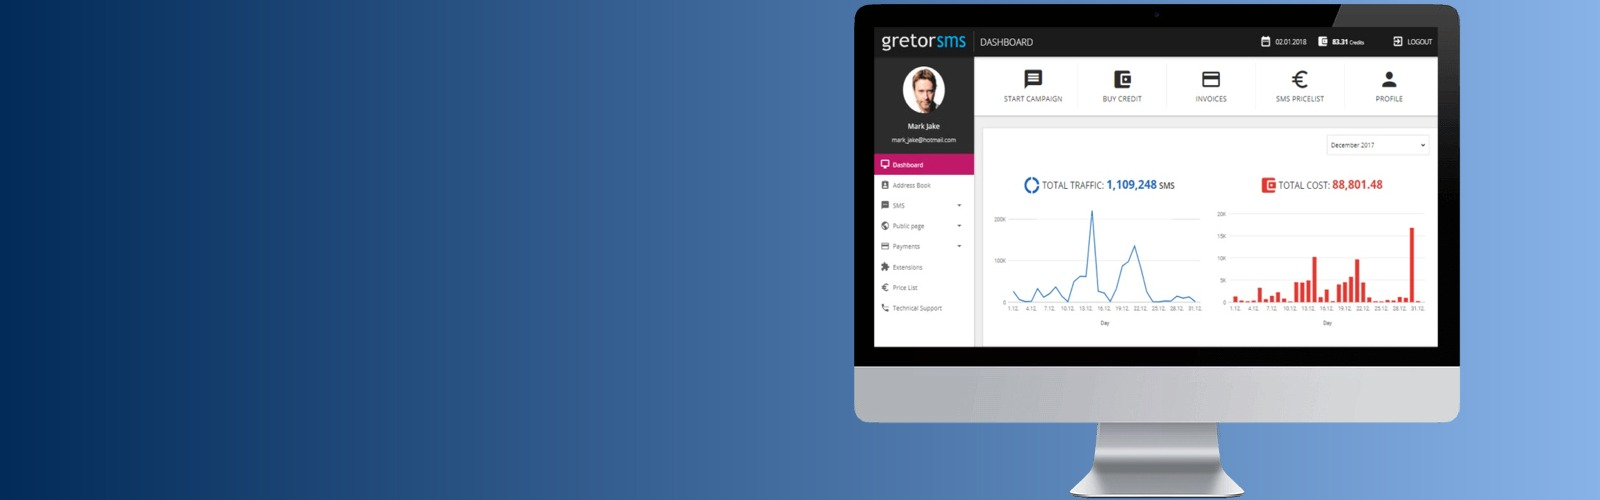 Gretor.com - Web & Digital Marketing